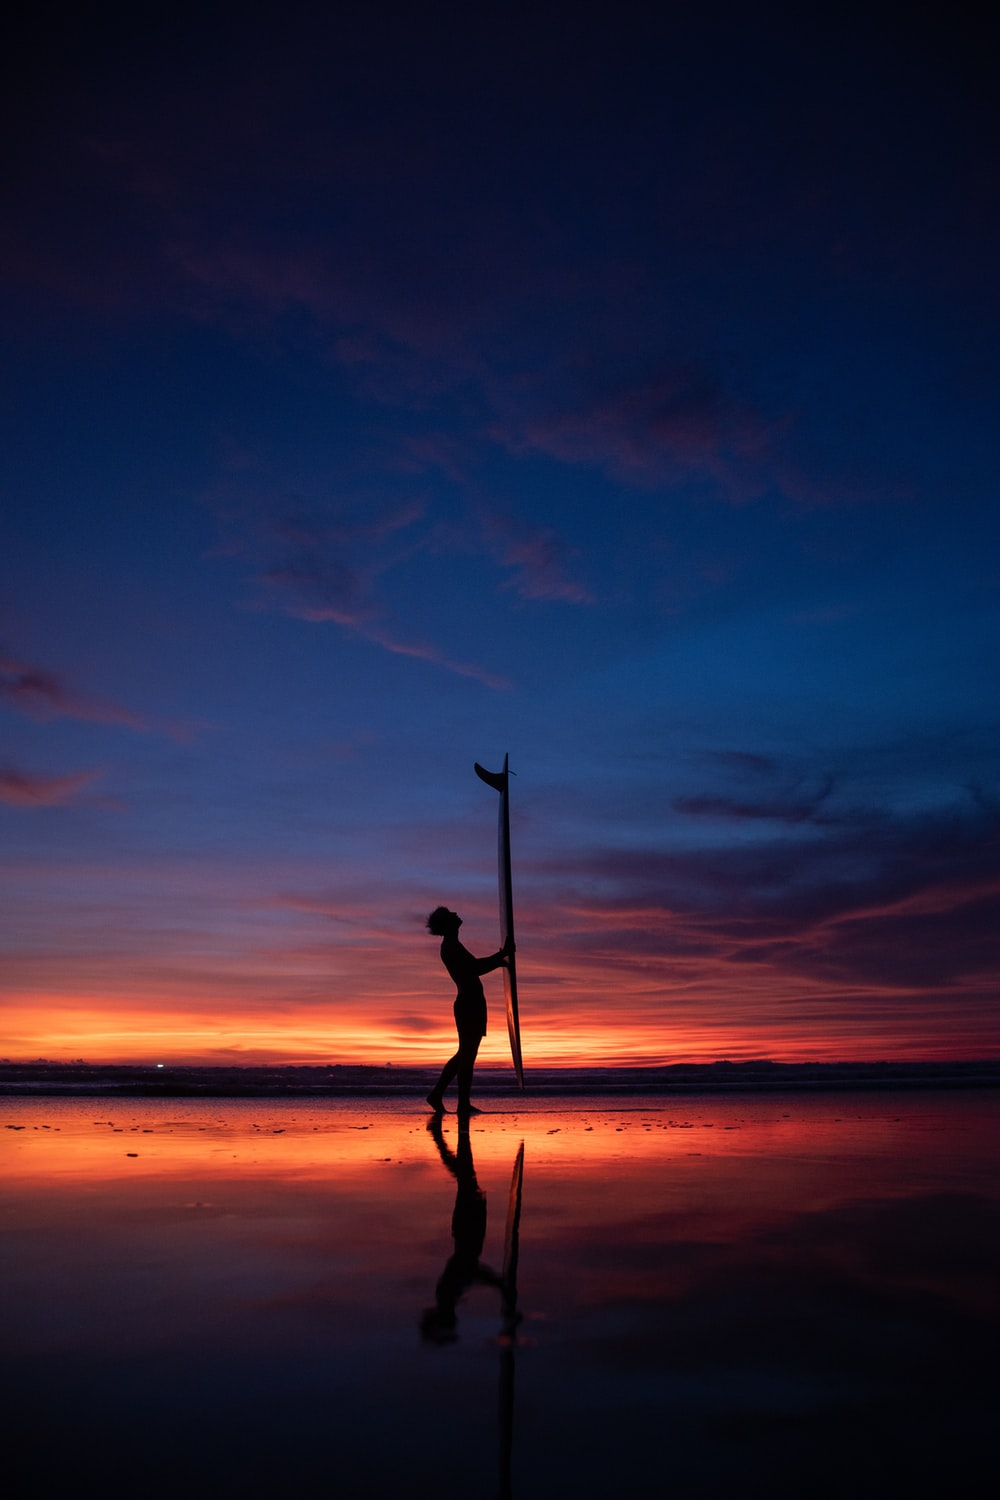 silhouette of man holding stick standing on seashore during sunset